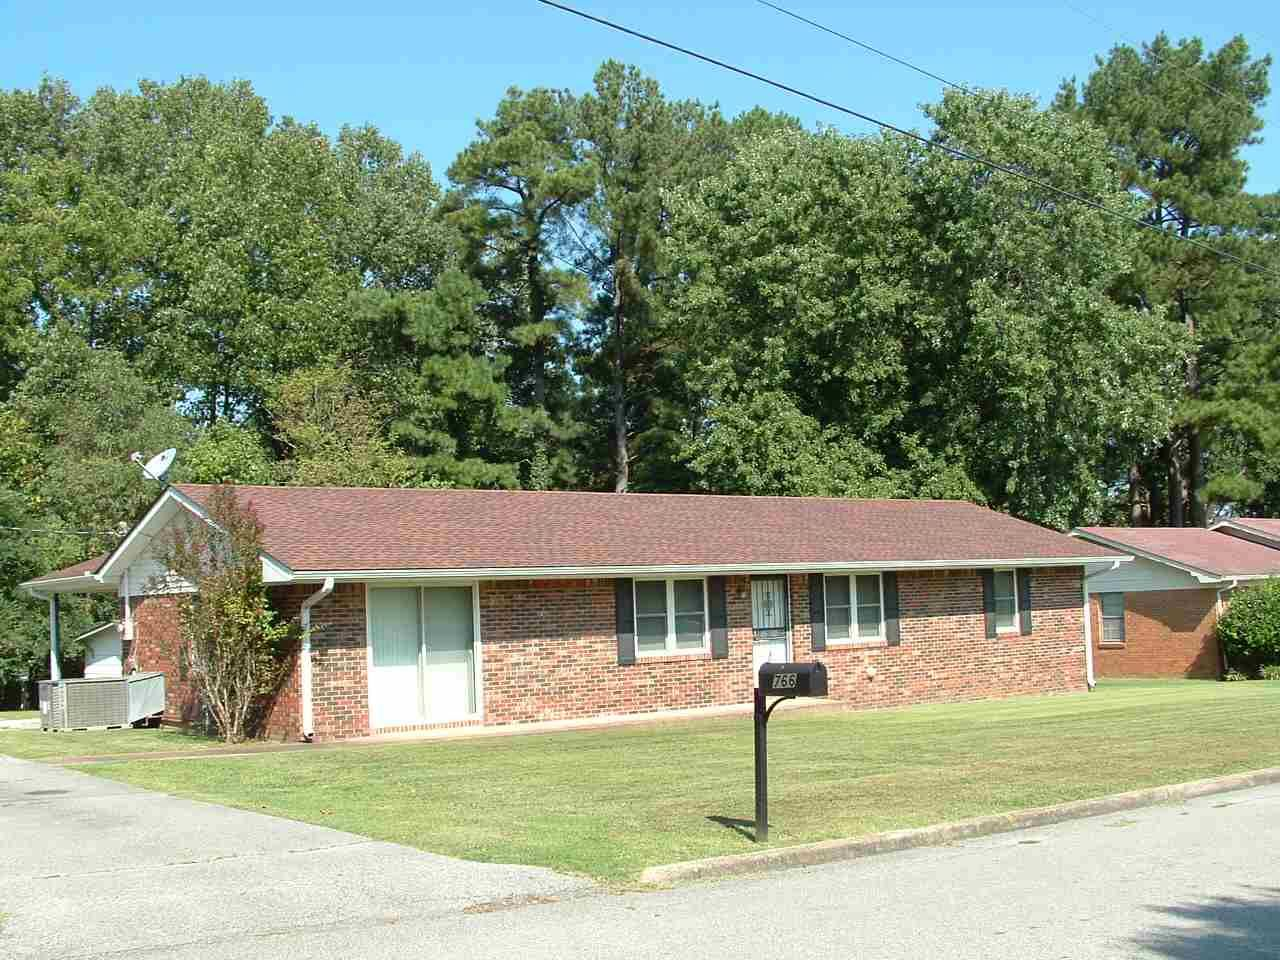 87500 home in trenton tn gibson county real estate